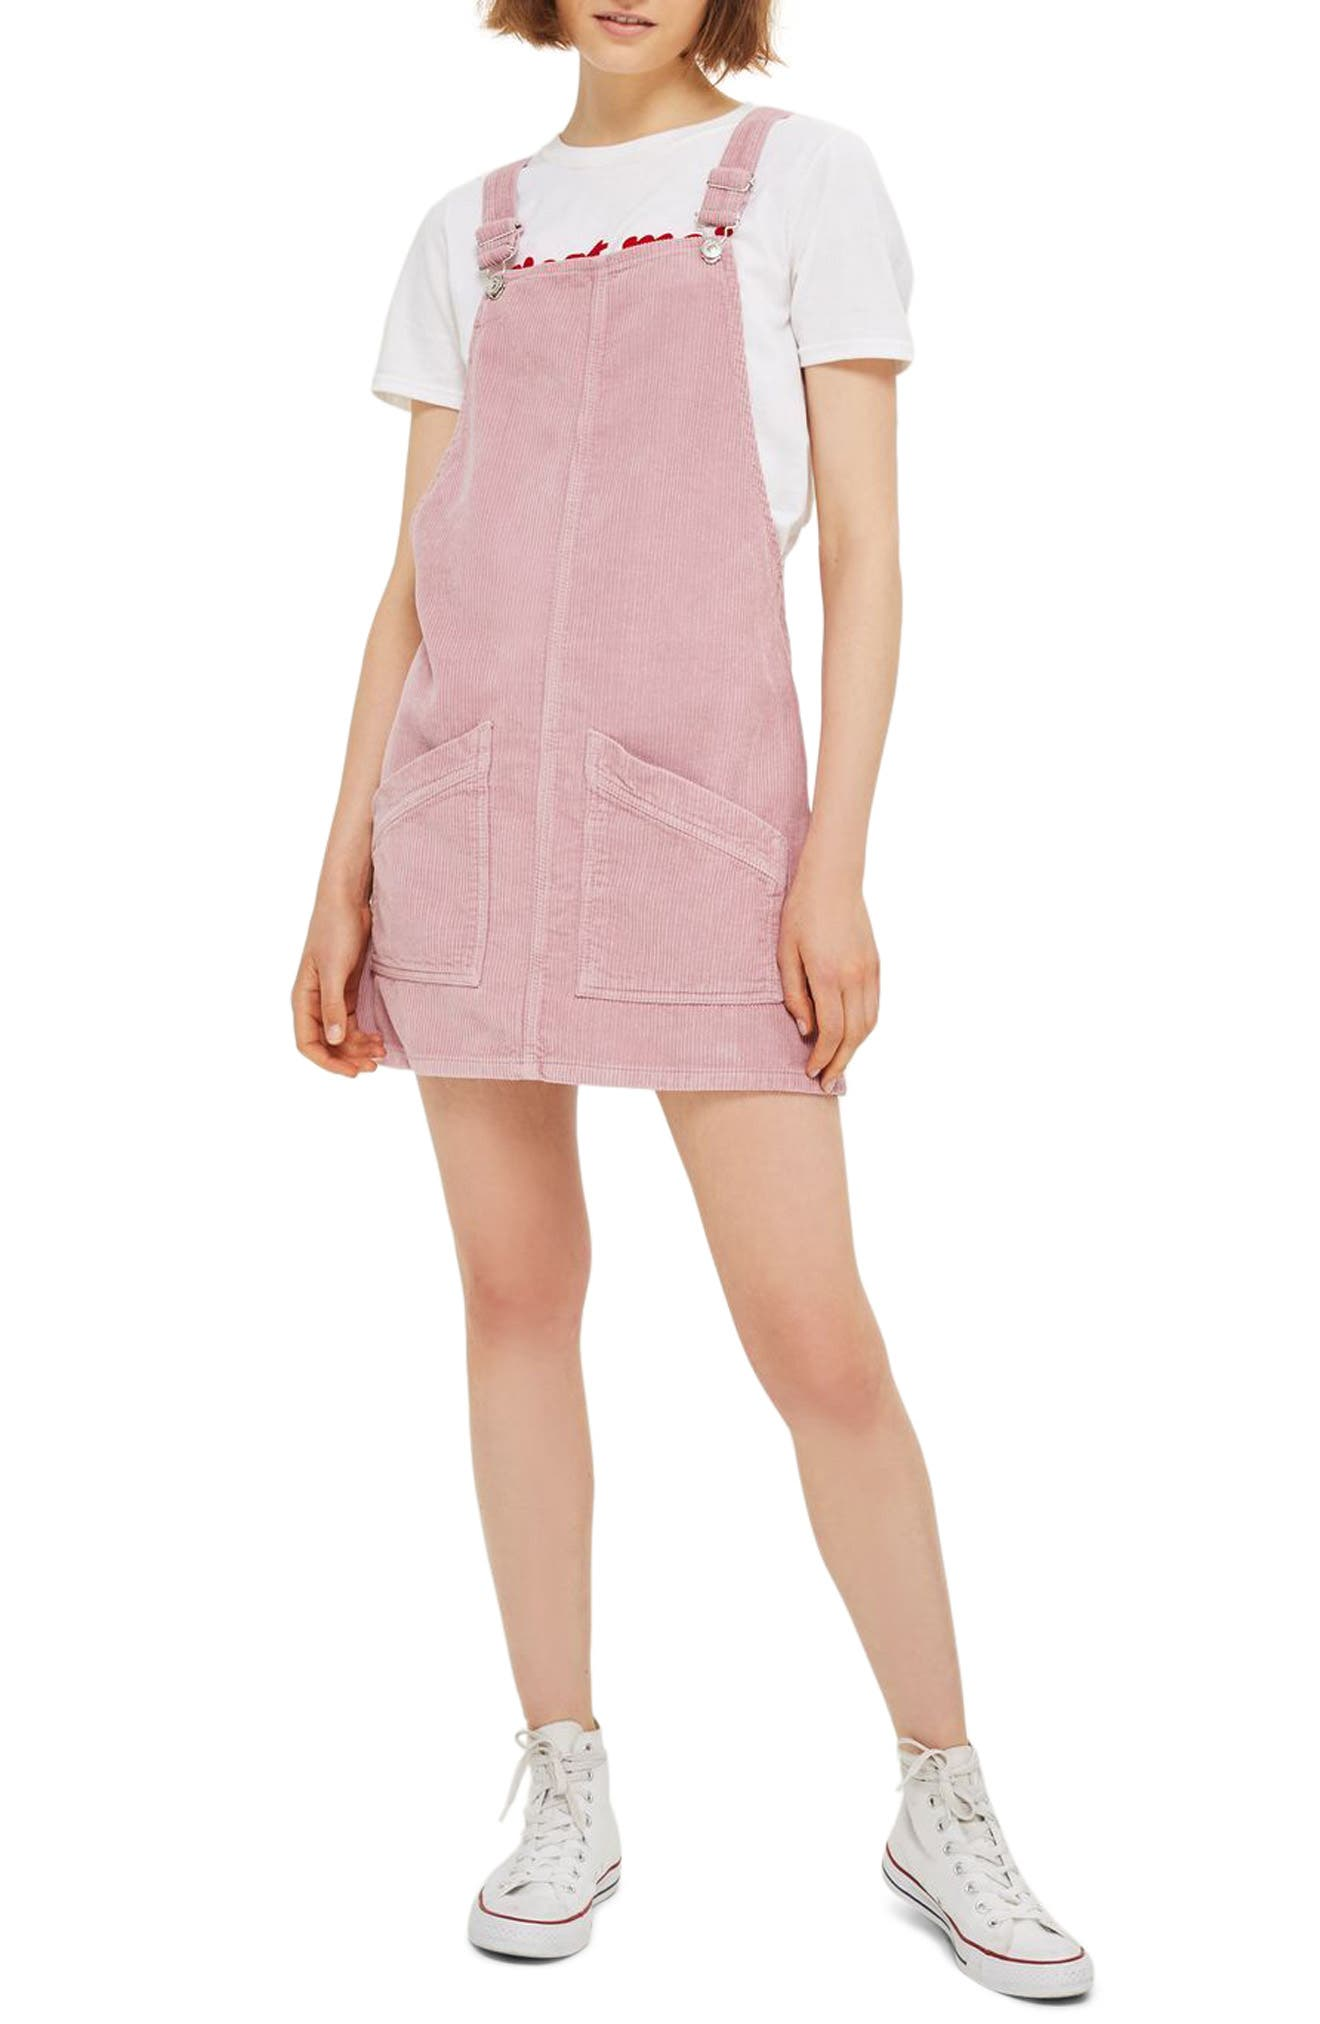 Alternate Image 1 Selected - Topshop Corduroy Pinafore Dress